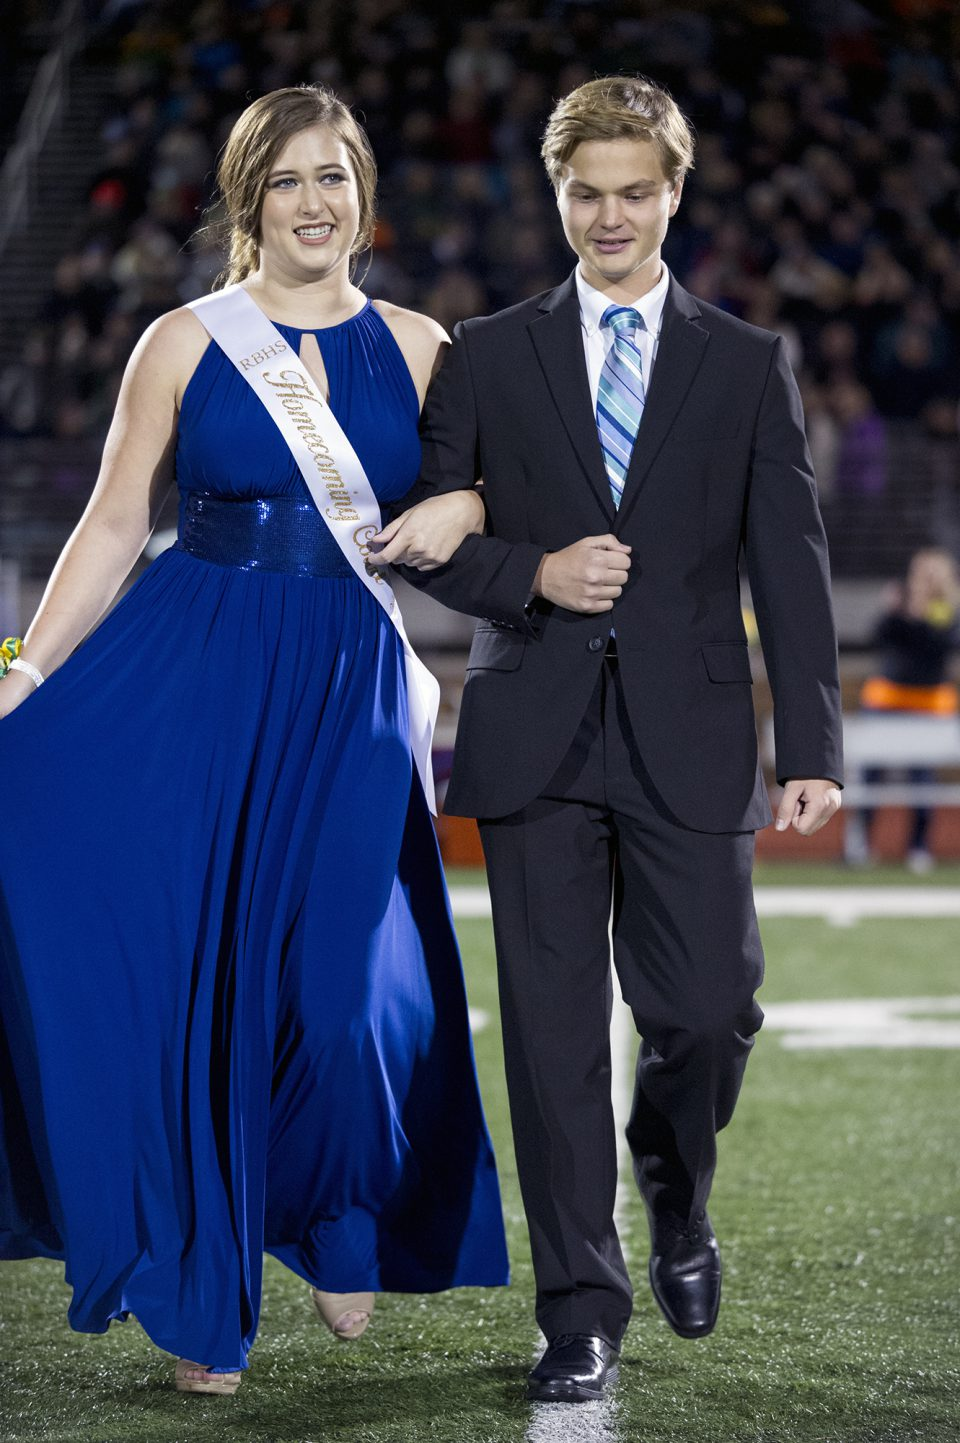 Homecoming queen candidate Riley Jones and escort Zach Bartman. Photo by Maya Bell.